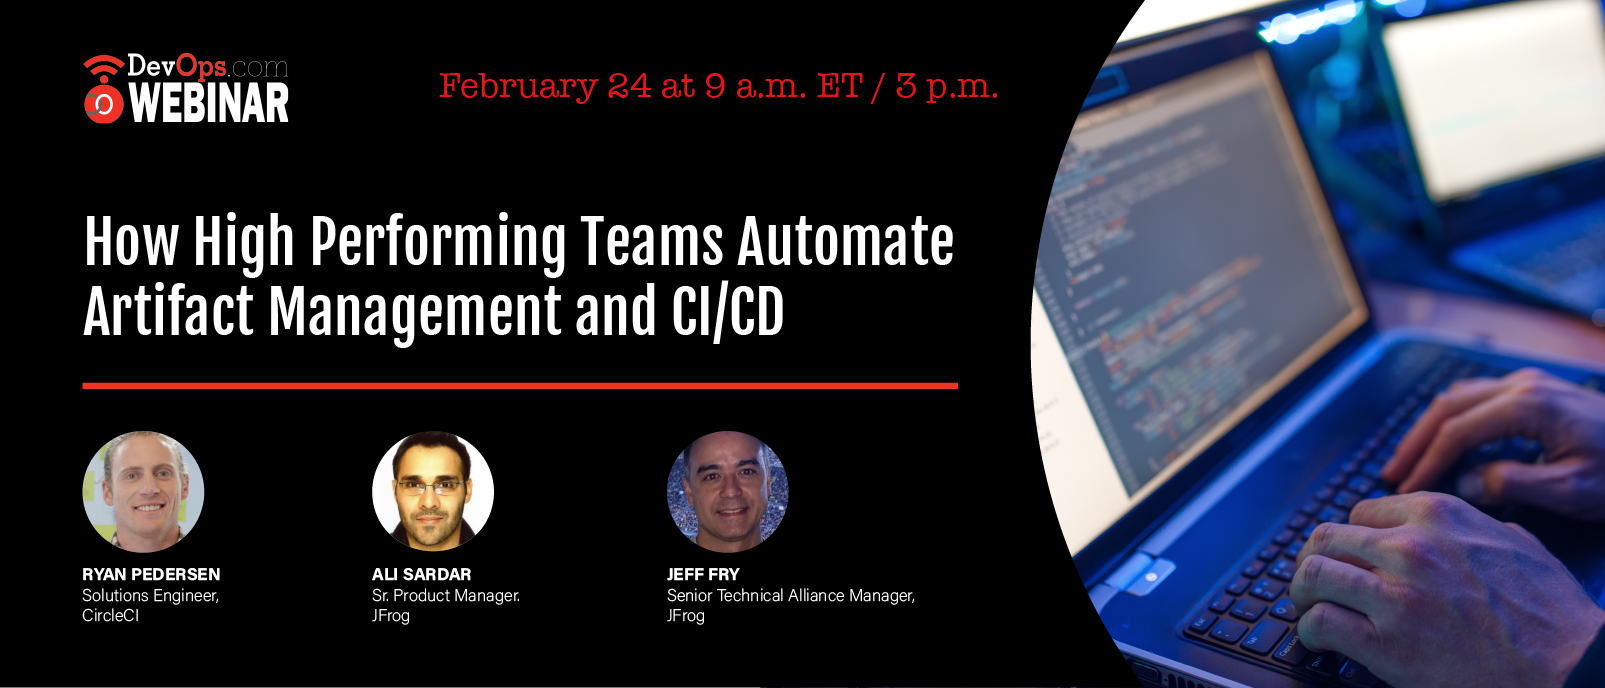 How High Performing Teams Automate Artifact Management and CI/CD